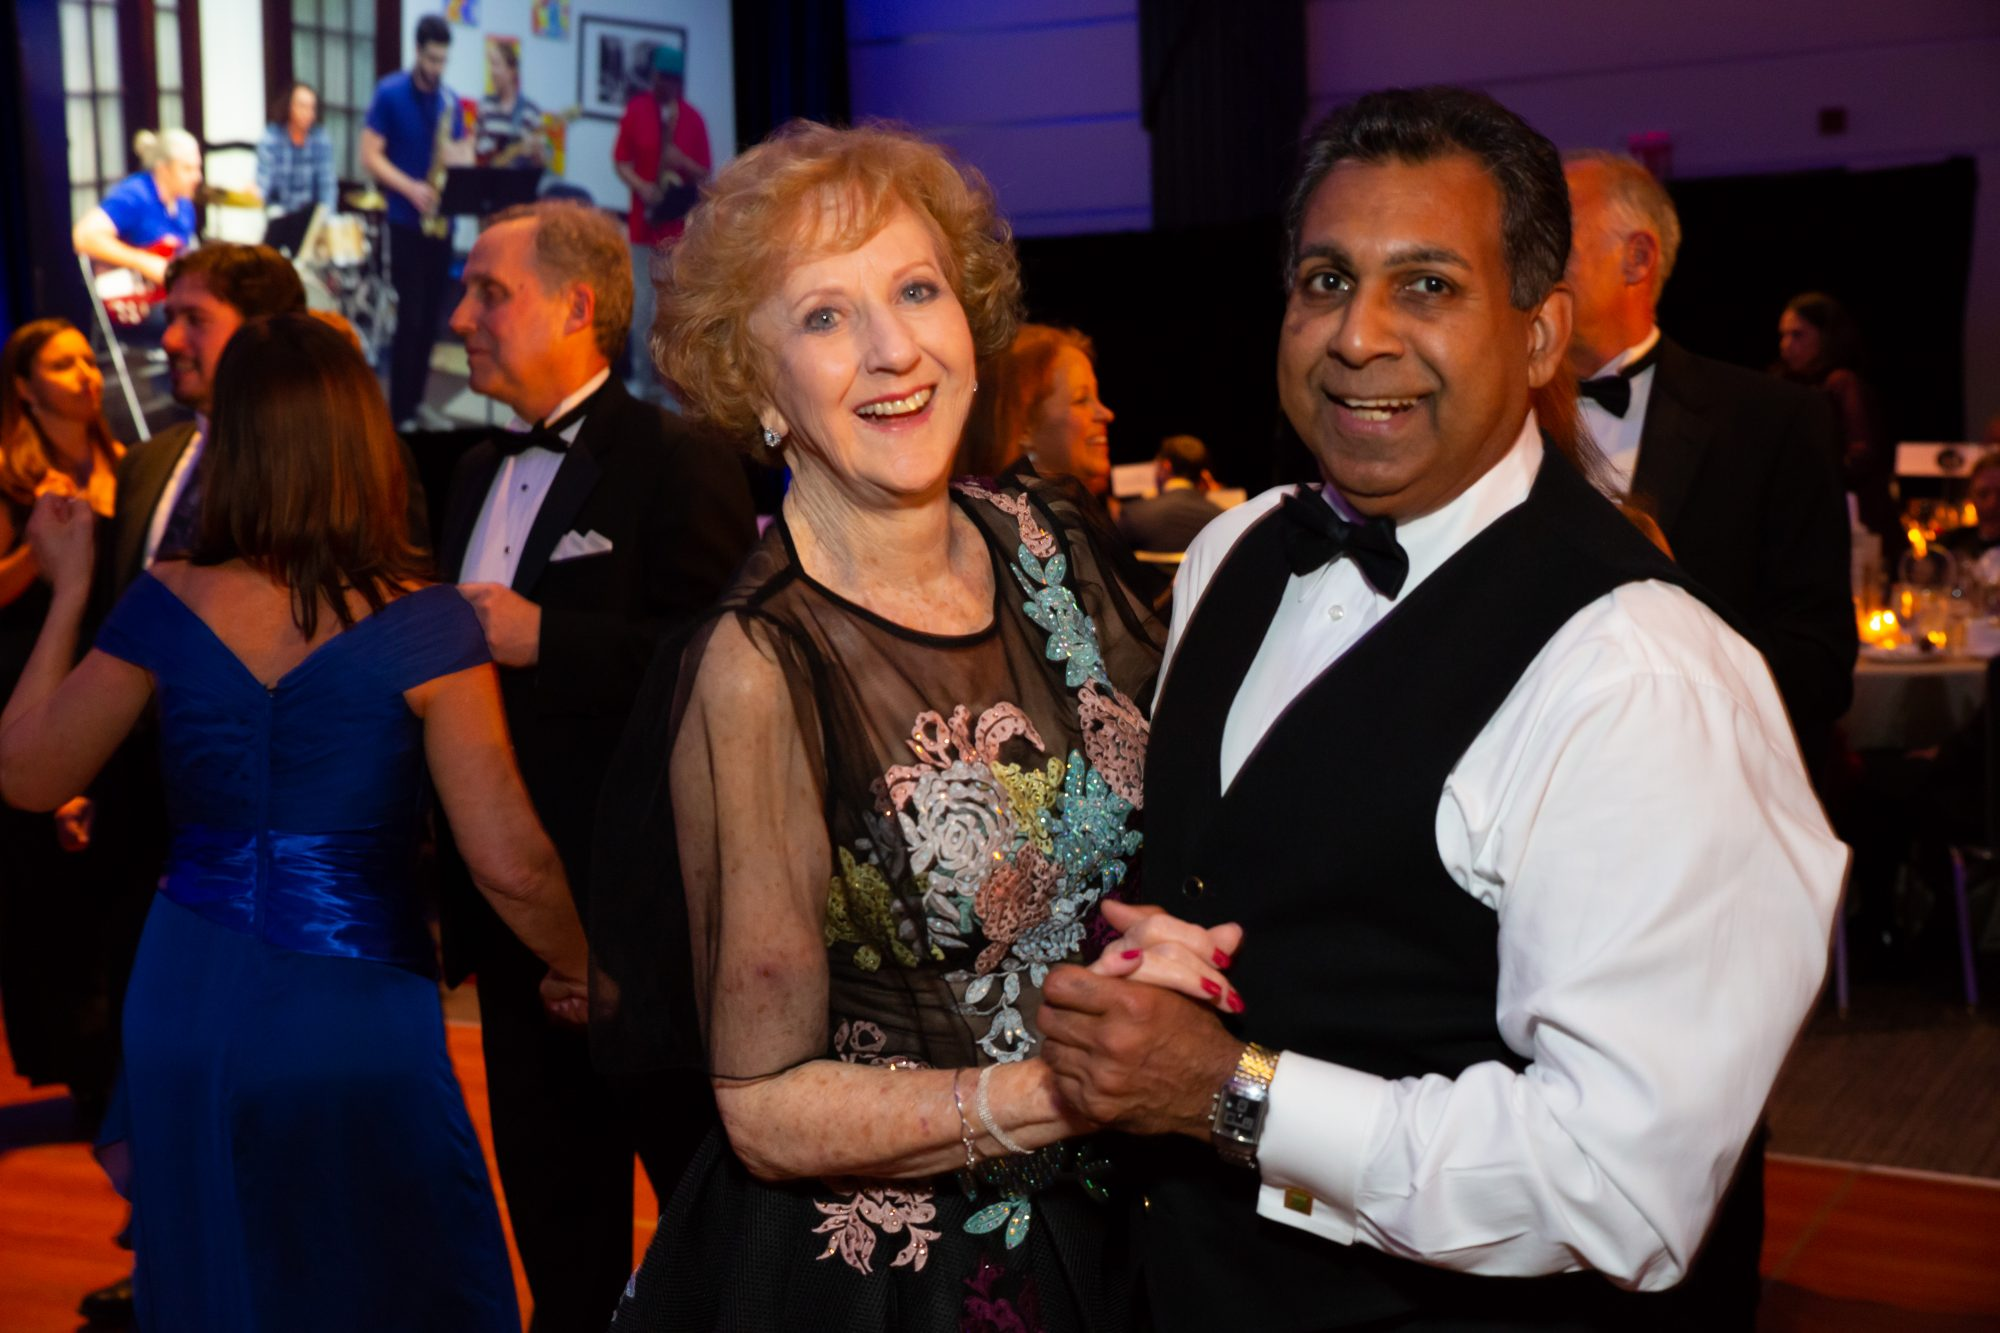 Guests hit the dance floor at the 110th Anniversary Gala